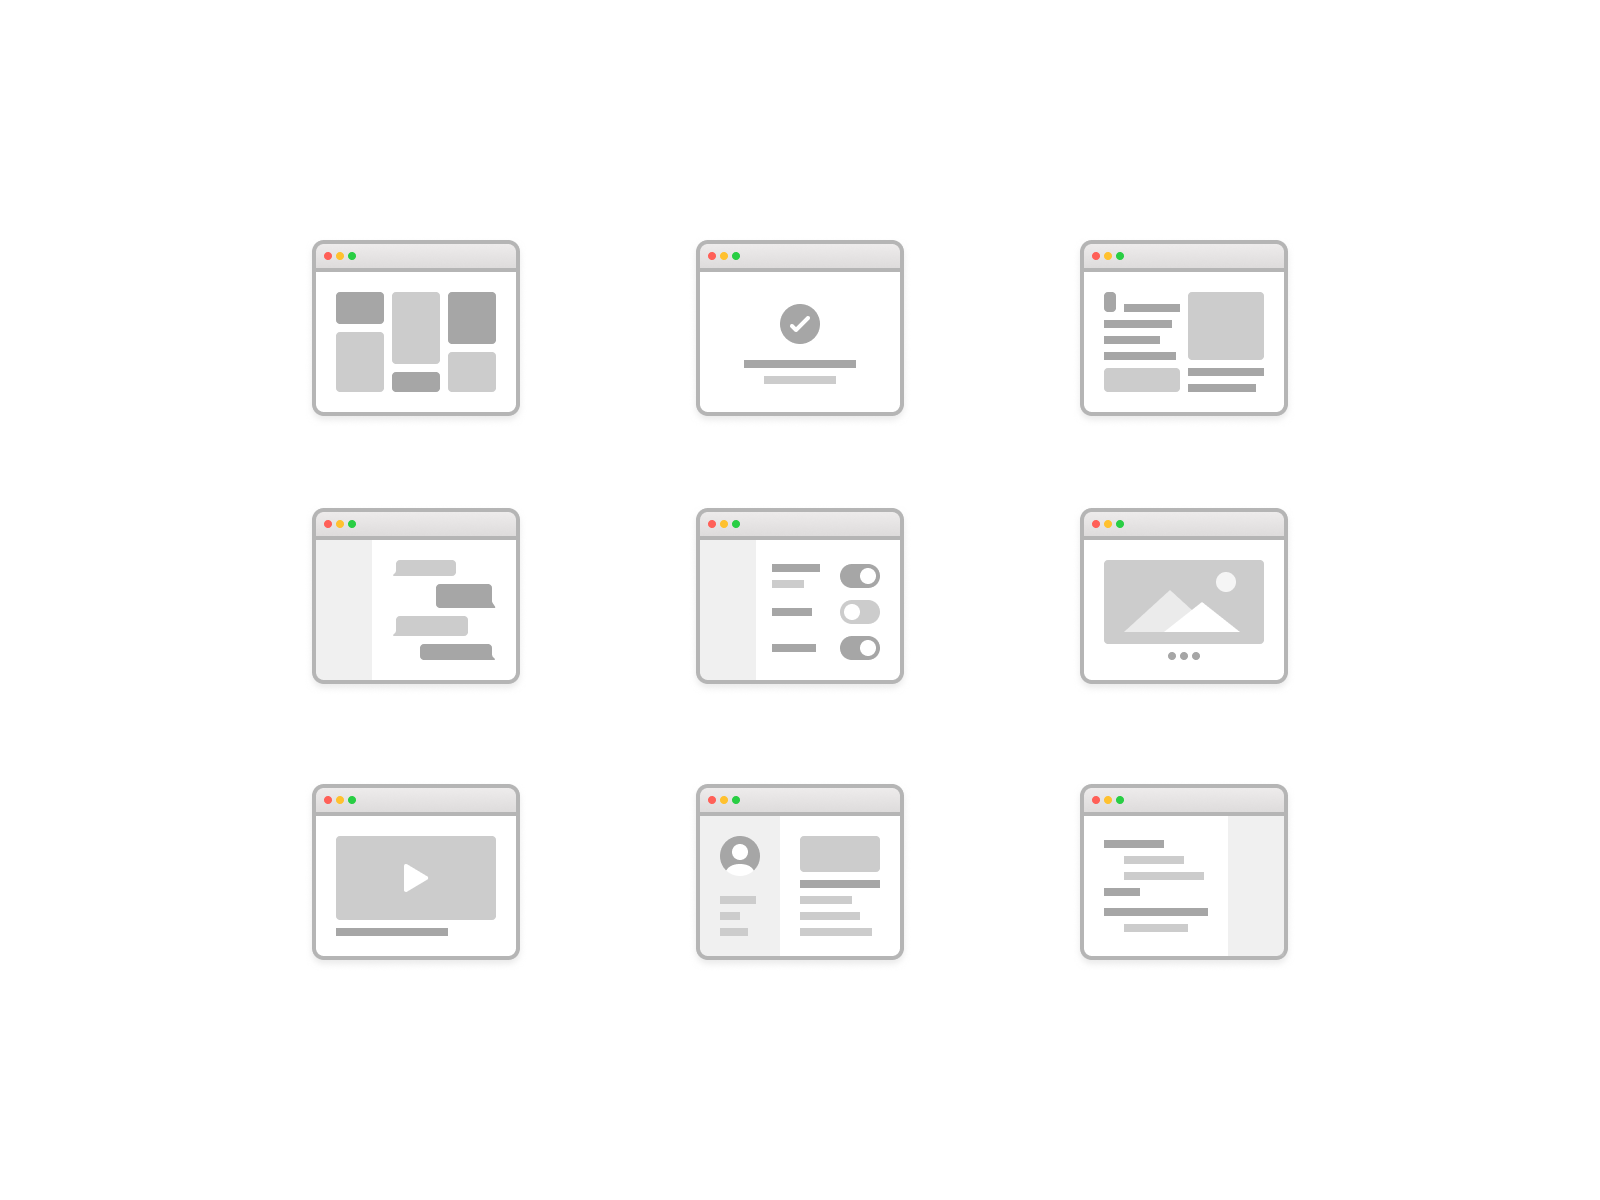 Wireframe layouts